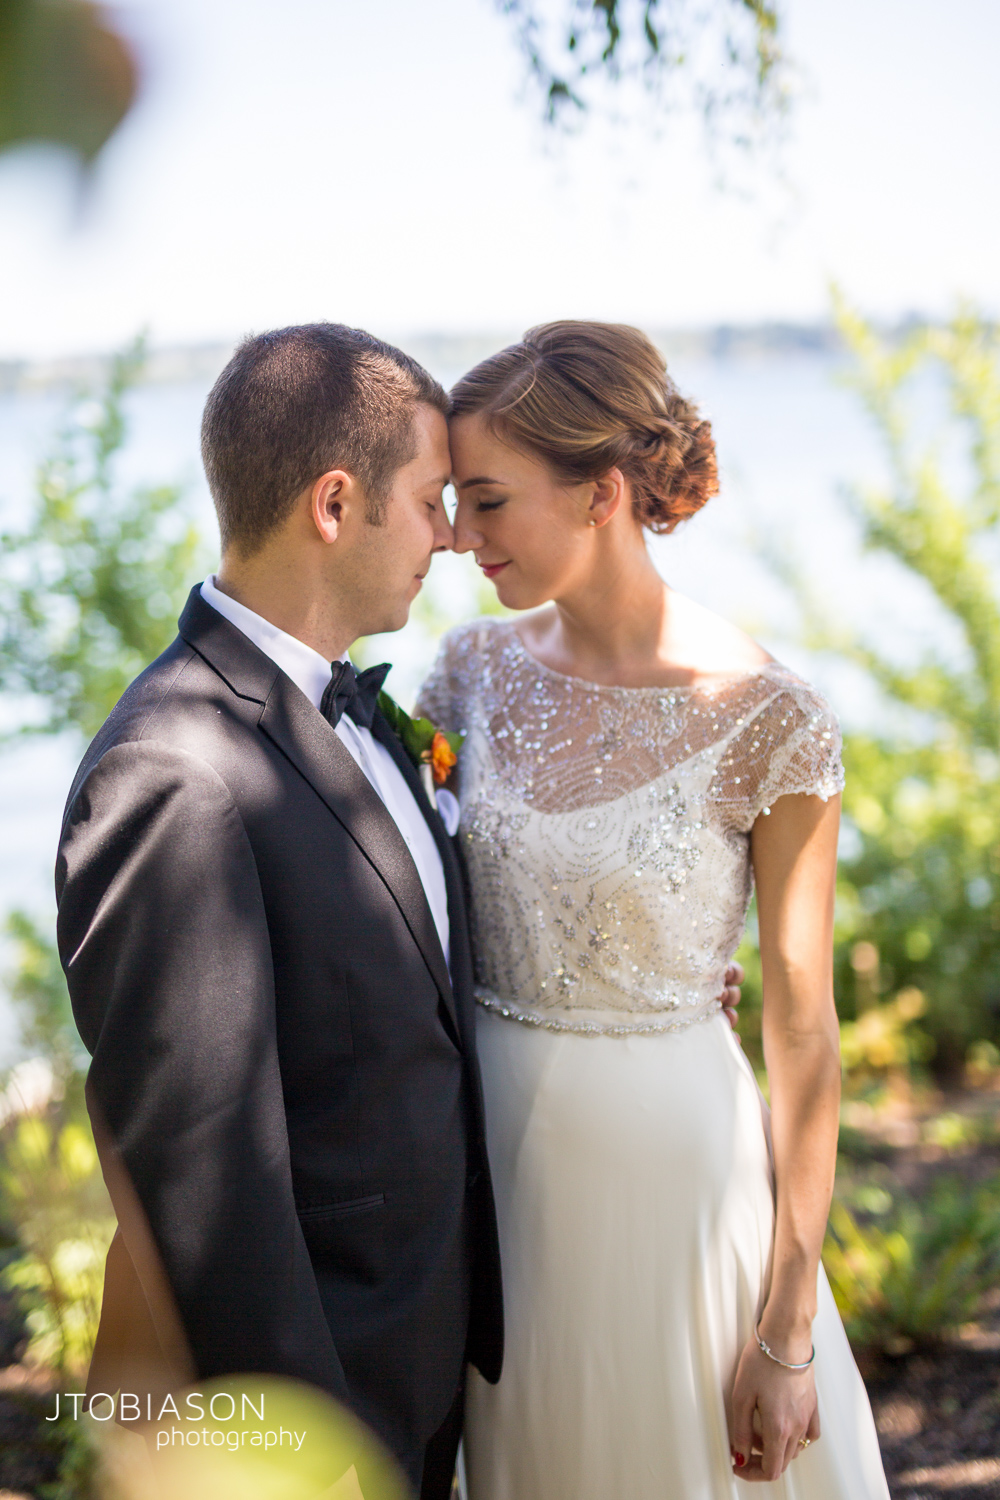 Couple has tender moment photo